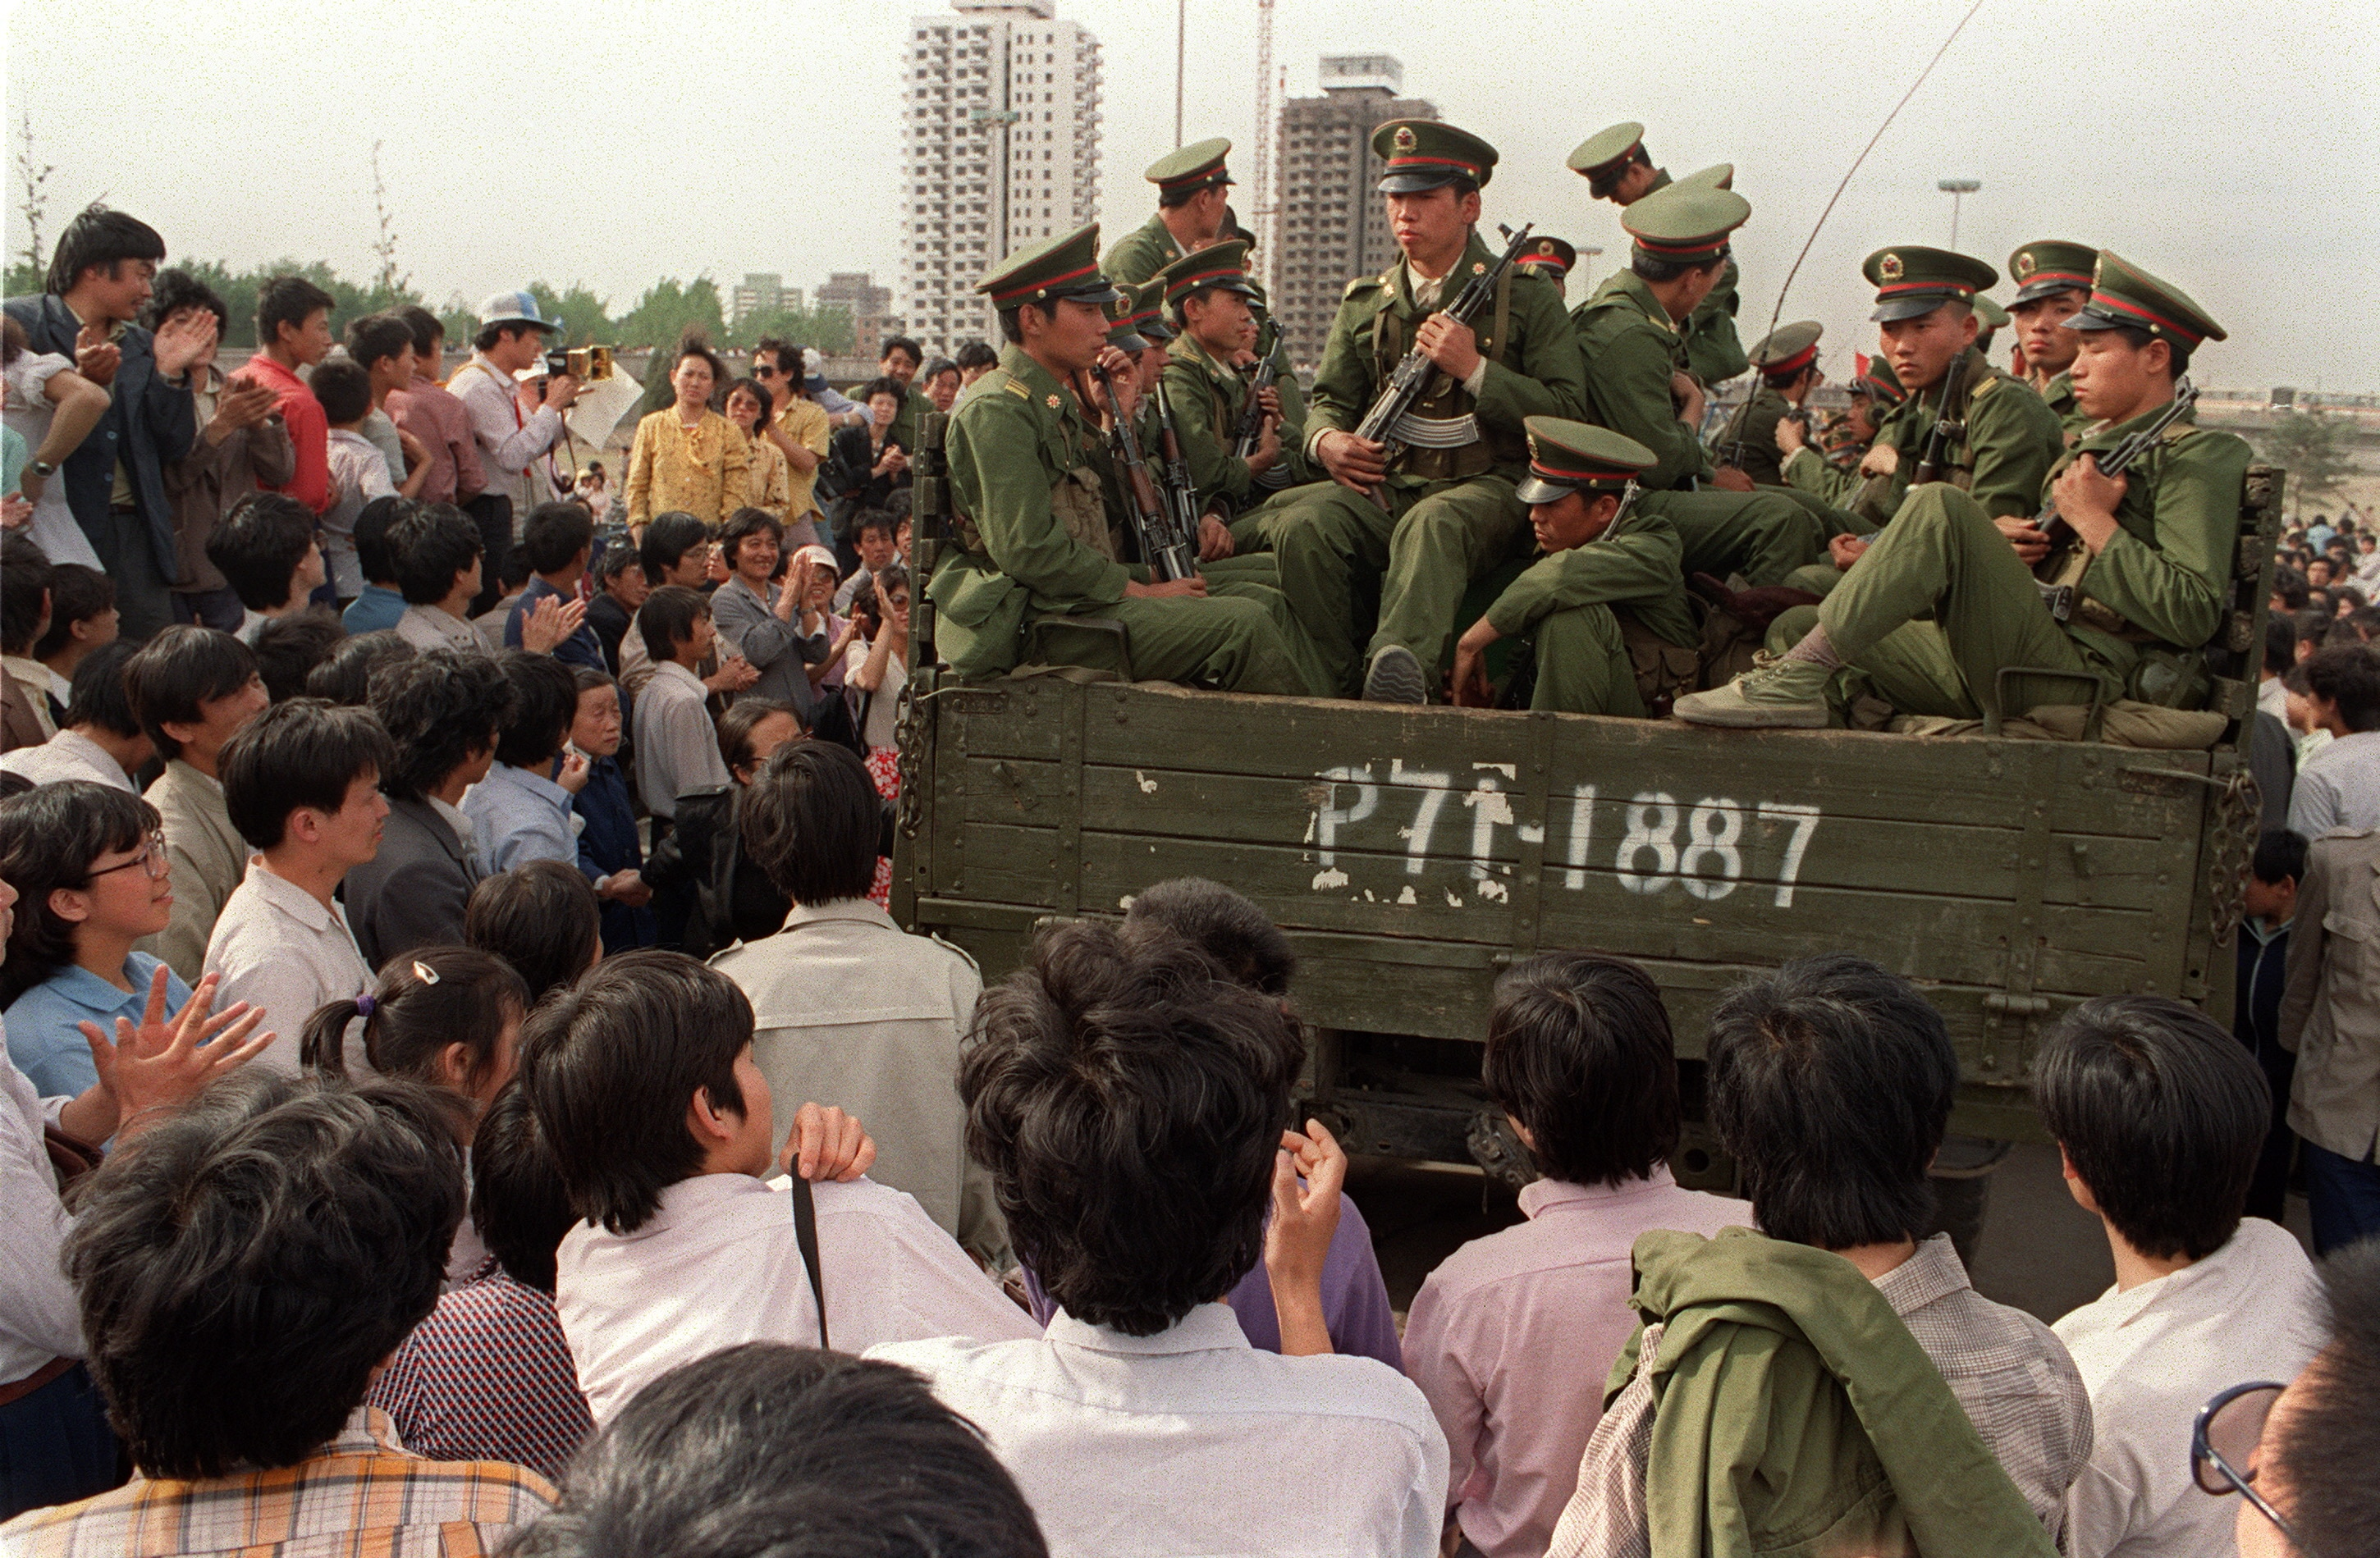 Pro-democracy demonstrators surround a truck filled of People's Liberation Army soldiers 20 May 1989.